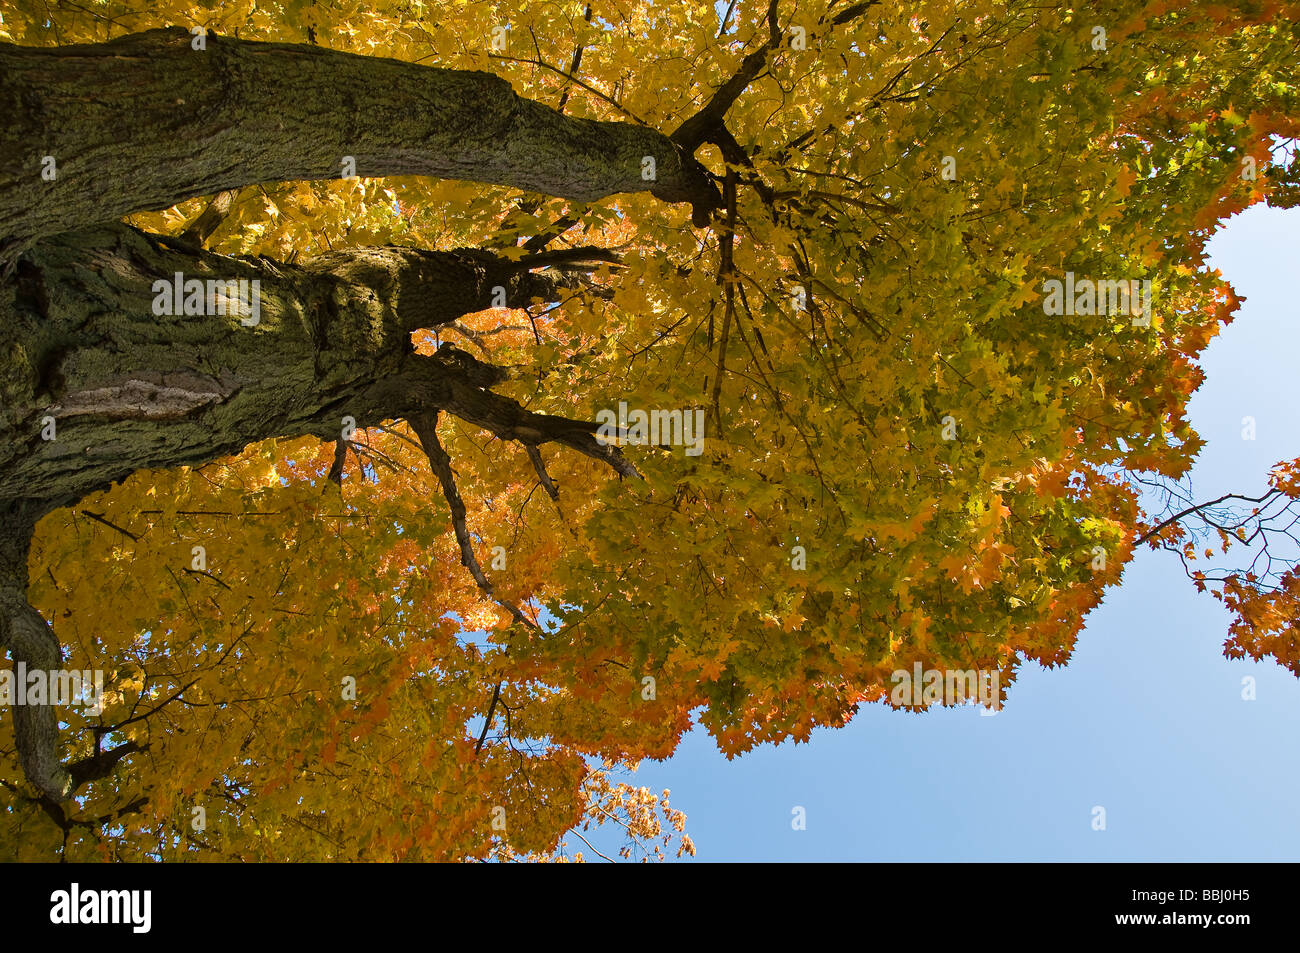 Maple tree with fall colour in Oakville Ontario Canada - Stock Image